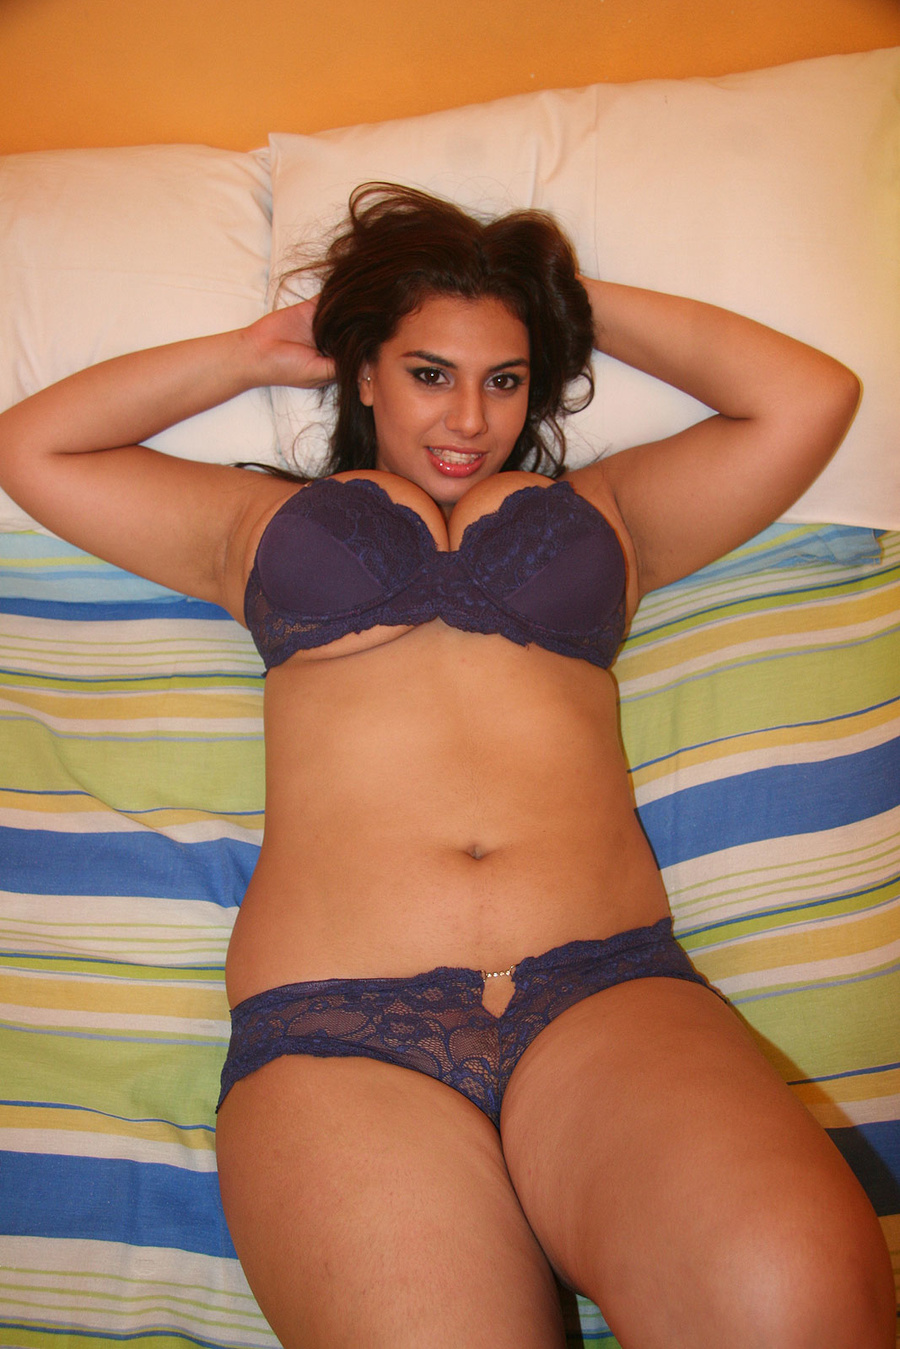 Chubby latina chicks